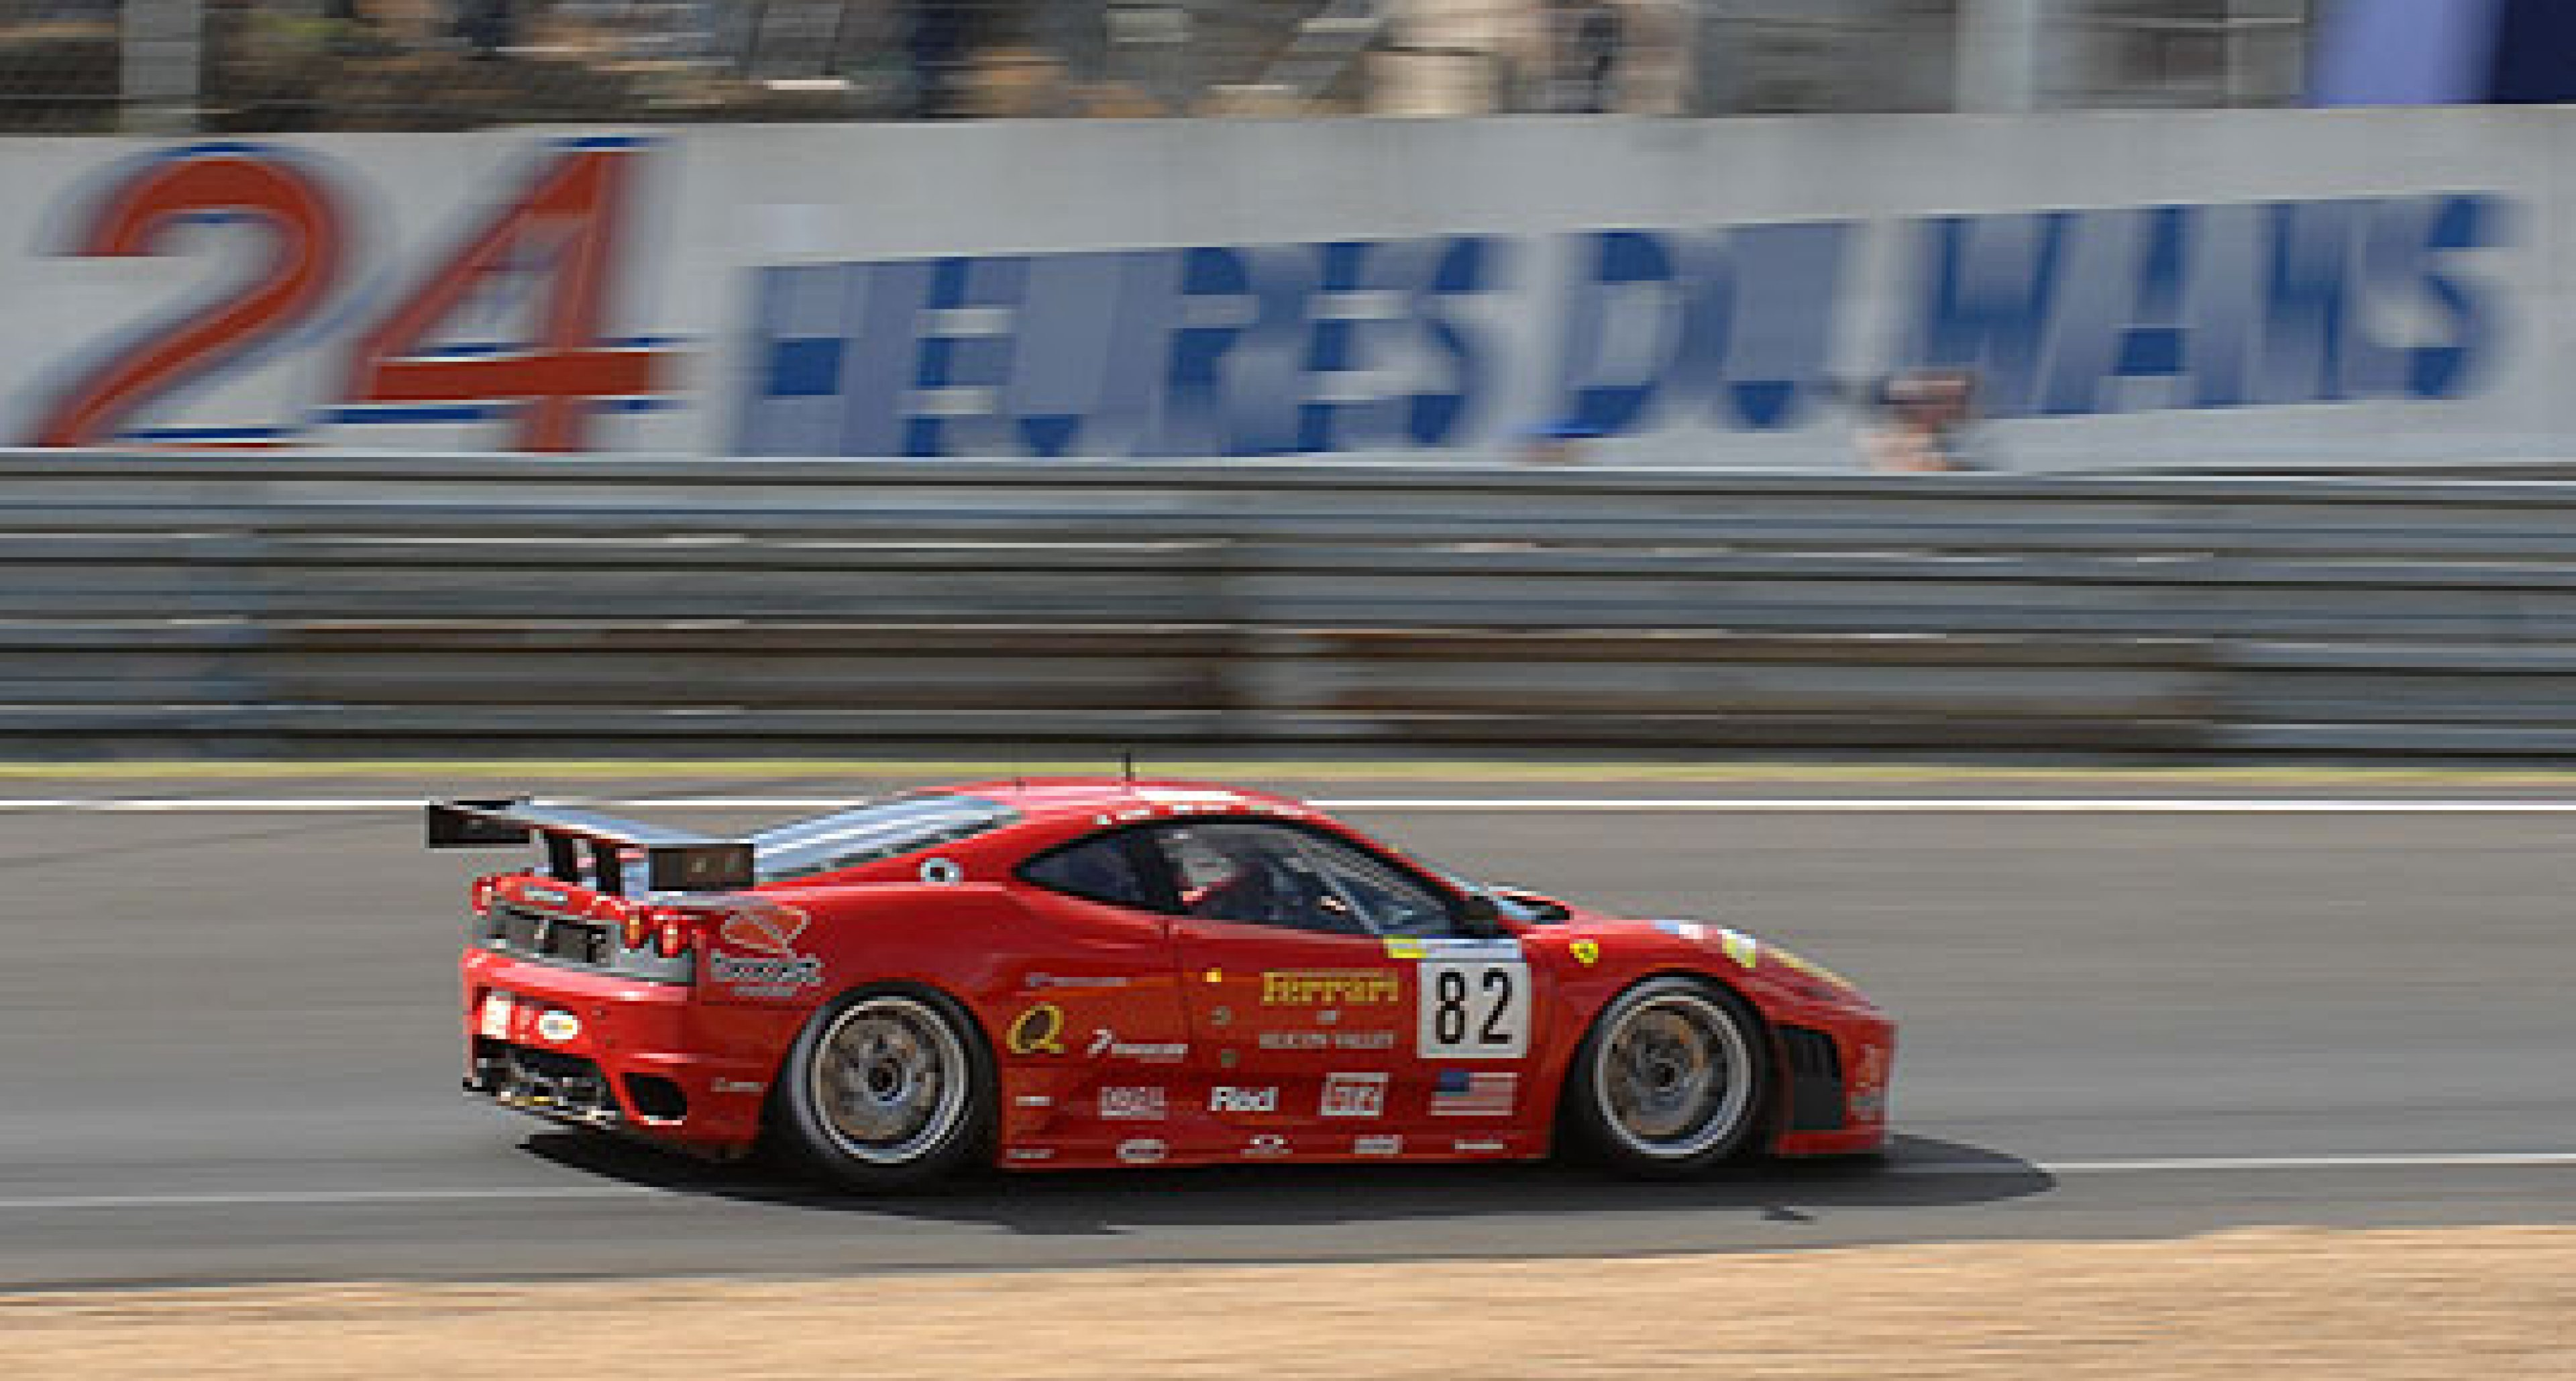 The 2008 Le Mans 24 Hours